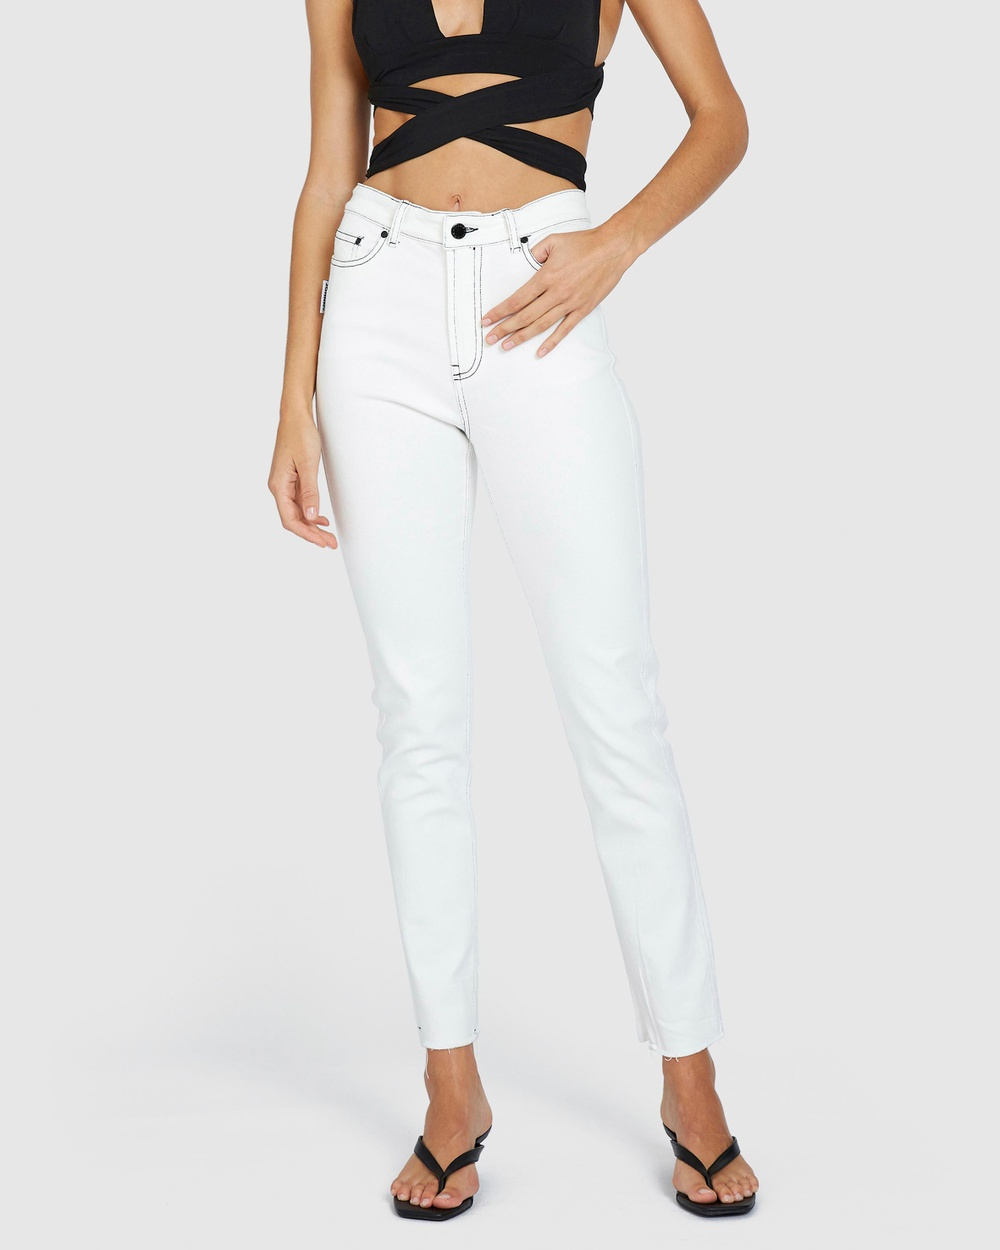 BY JOHNNY. Johnny Jeans High-Waisted White & Black